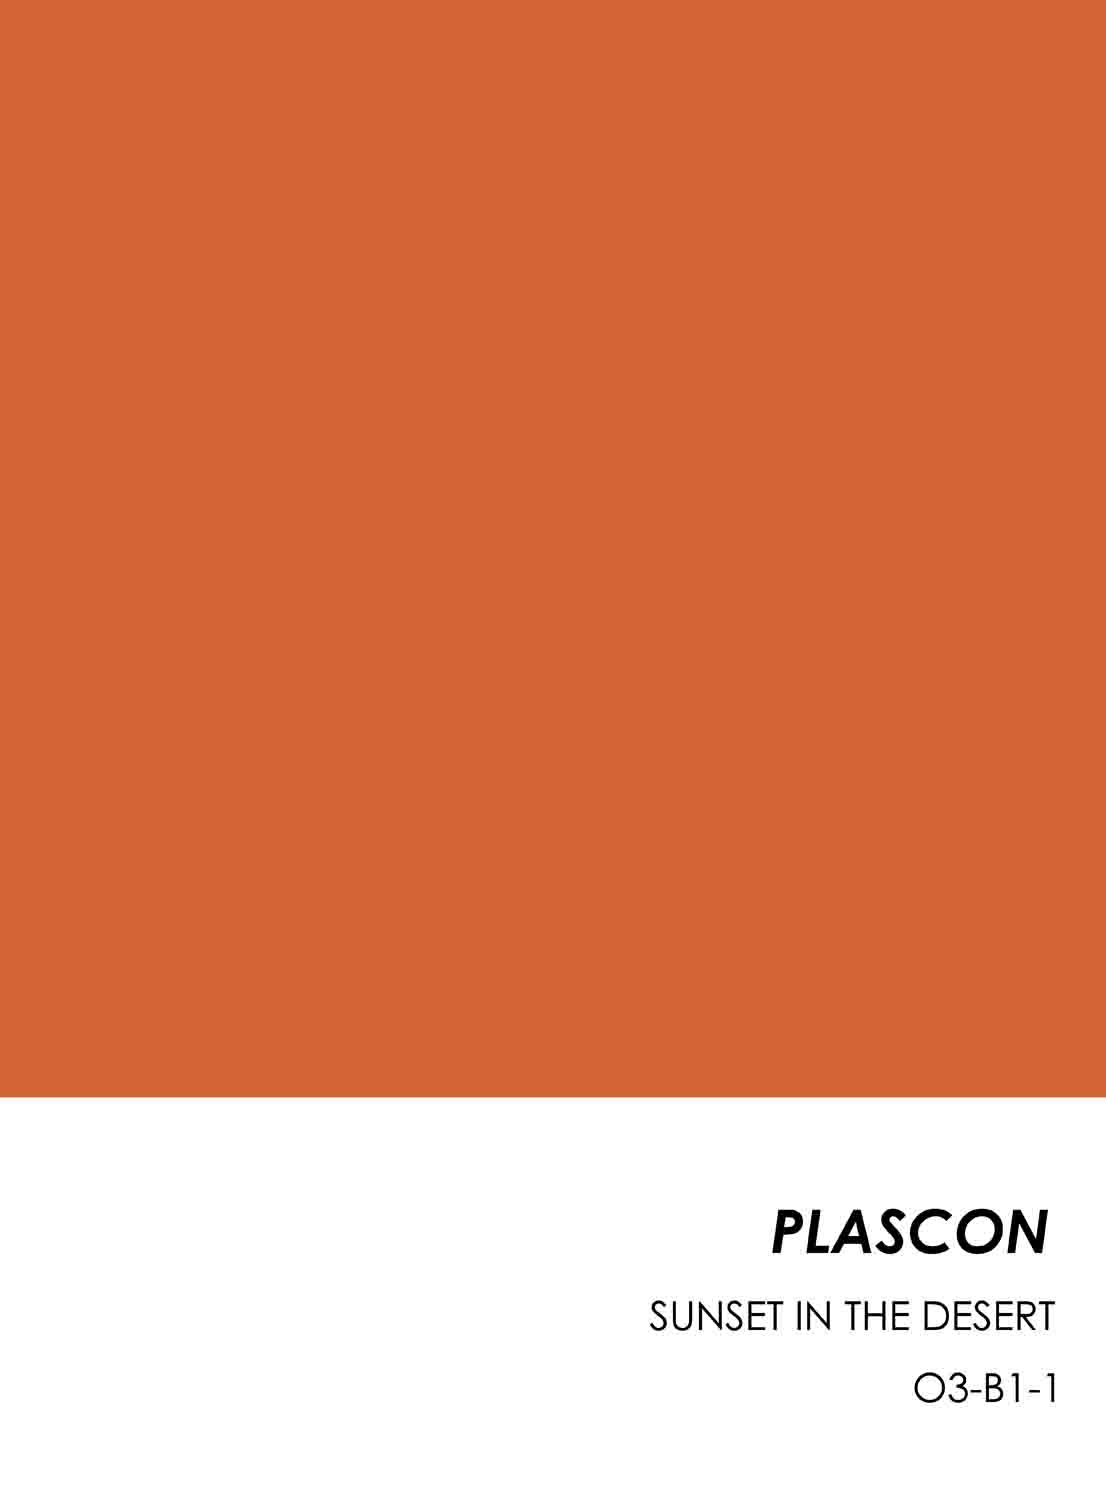 Plascons Summer Colour Trends For 2013